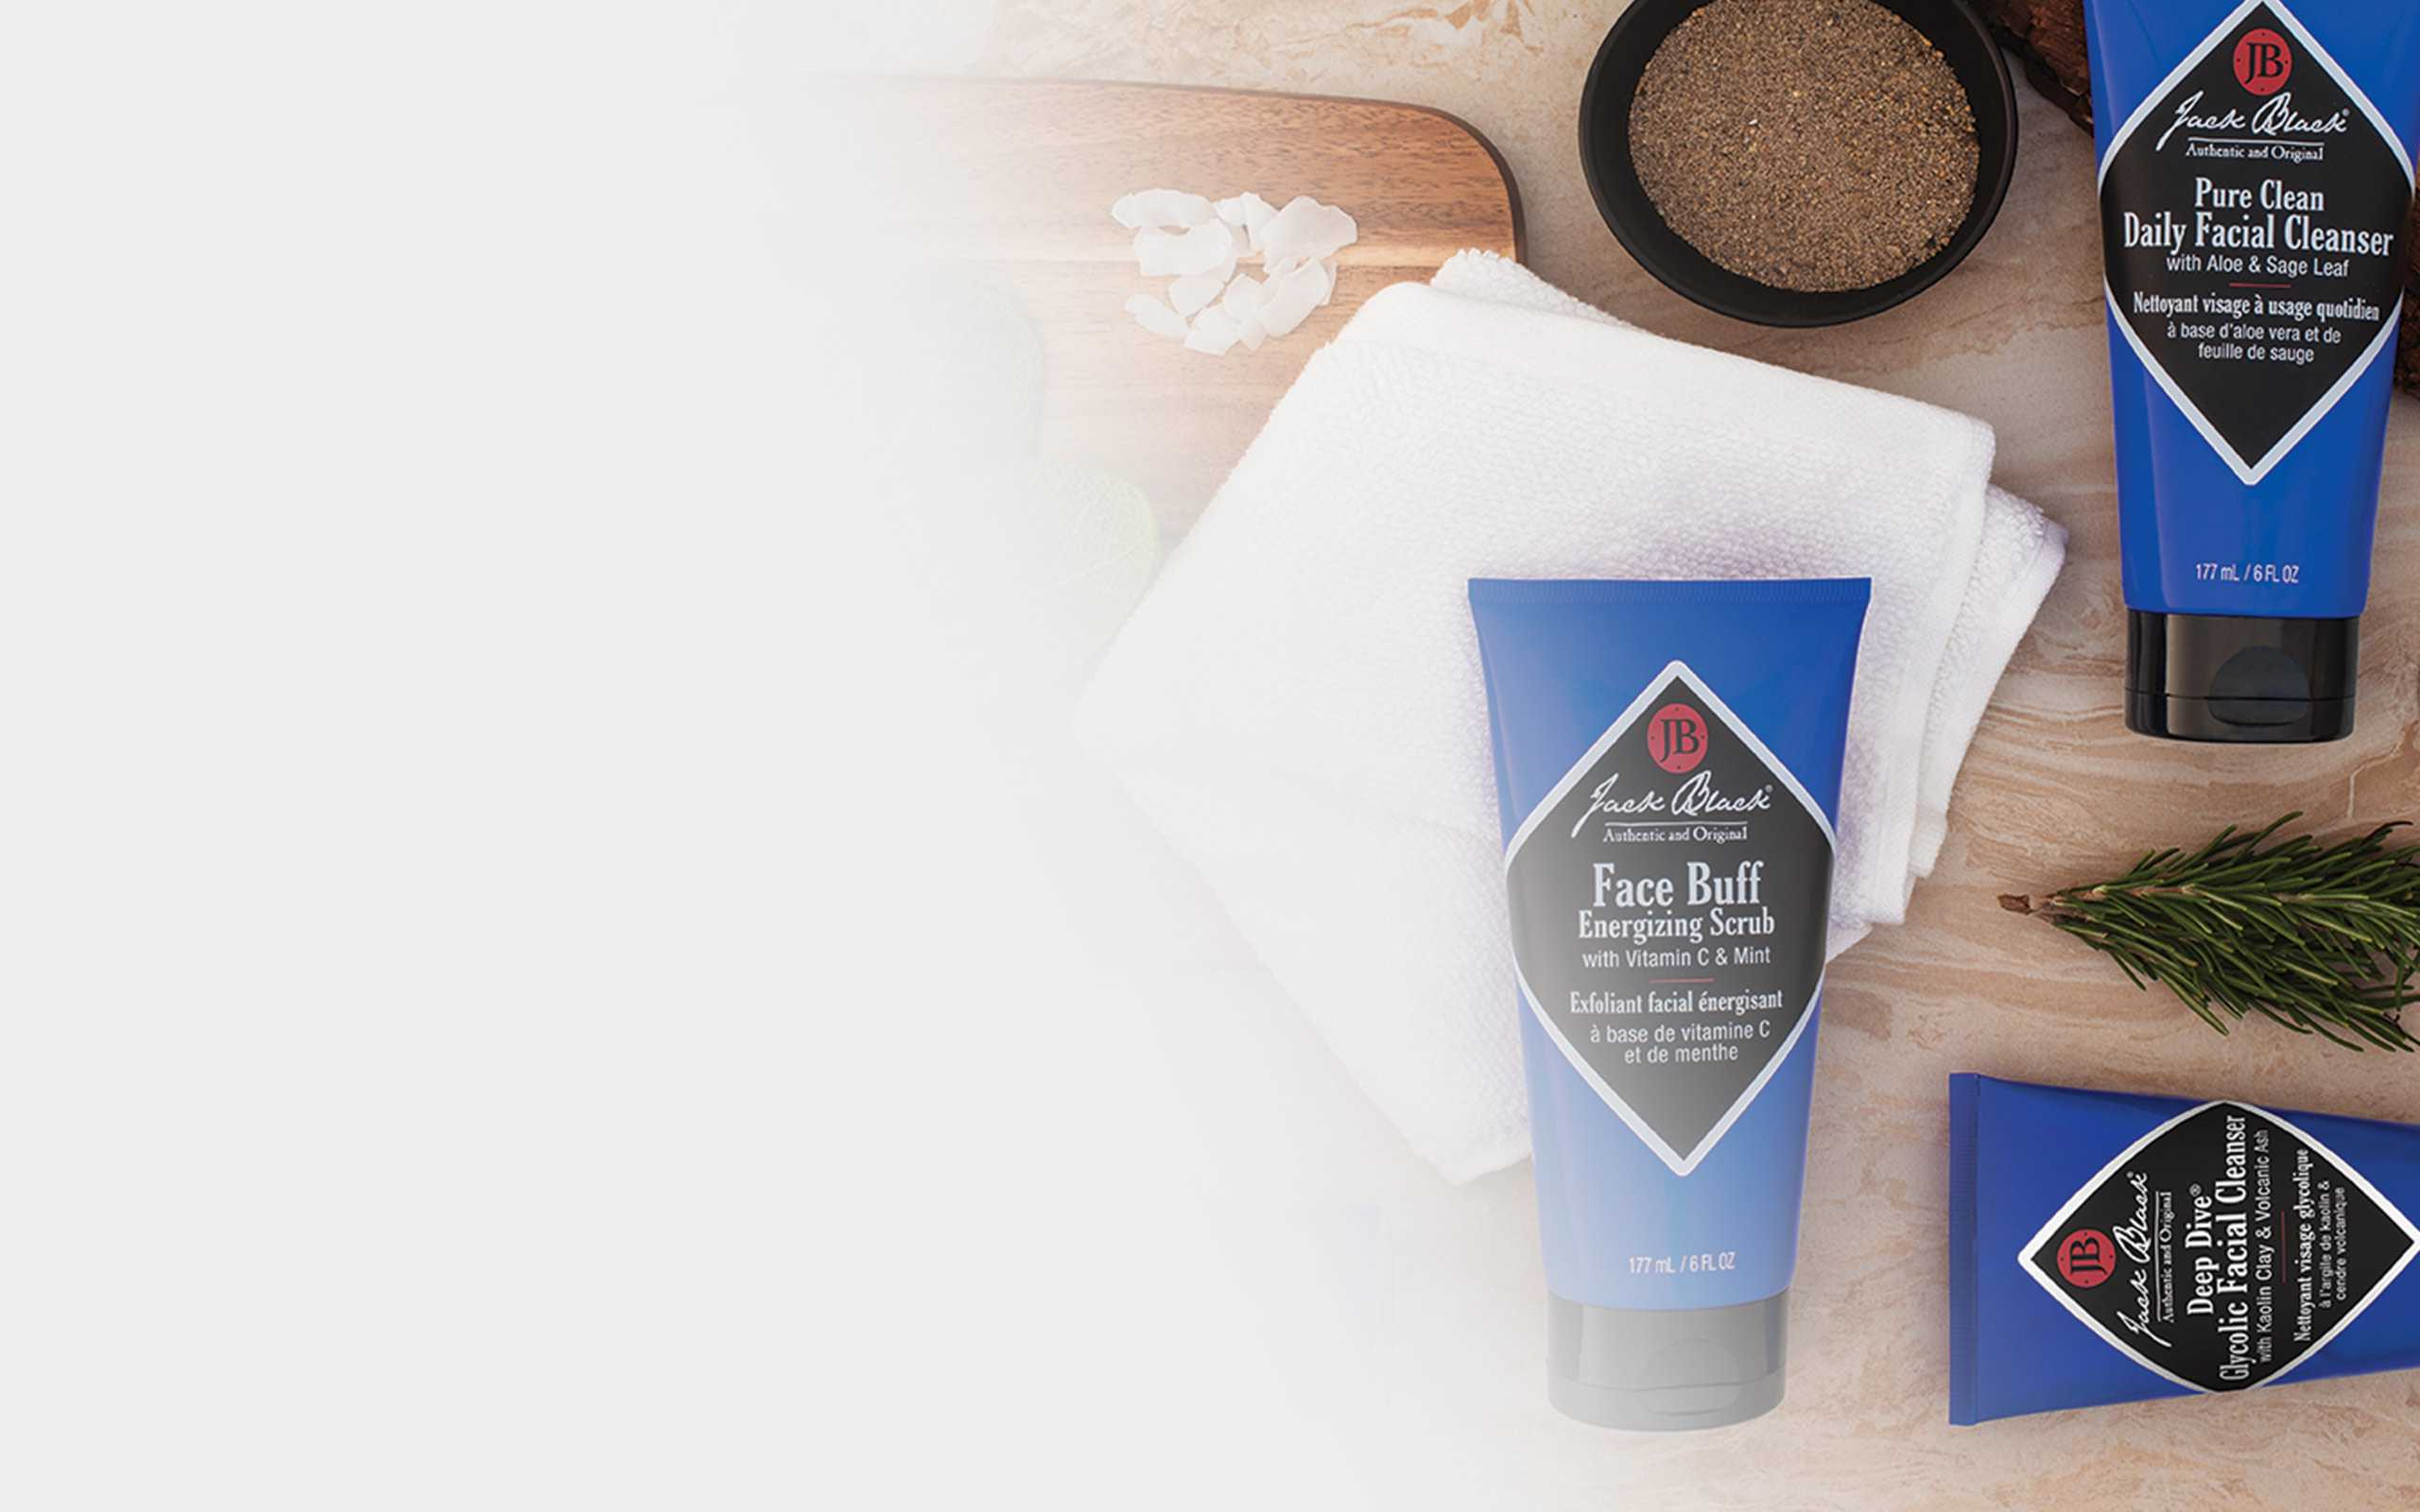 jack black spa products arranged on t able with leaves and wood boards